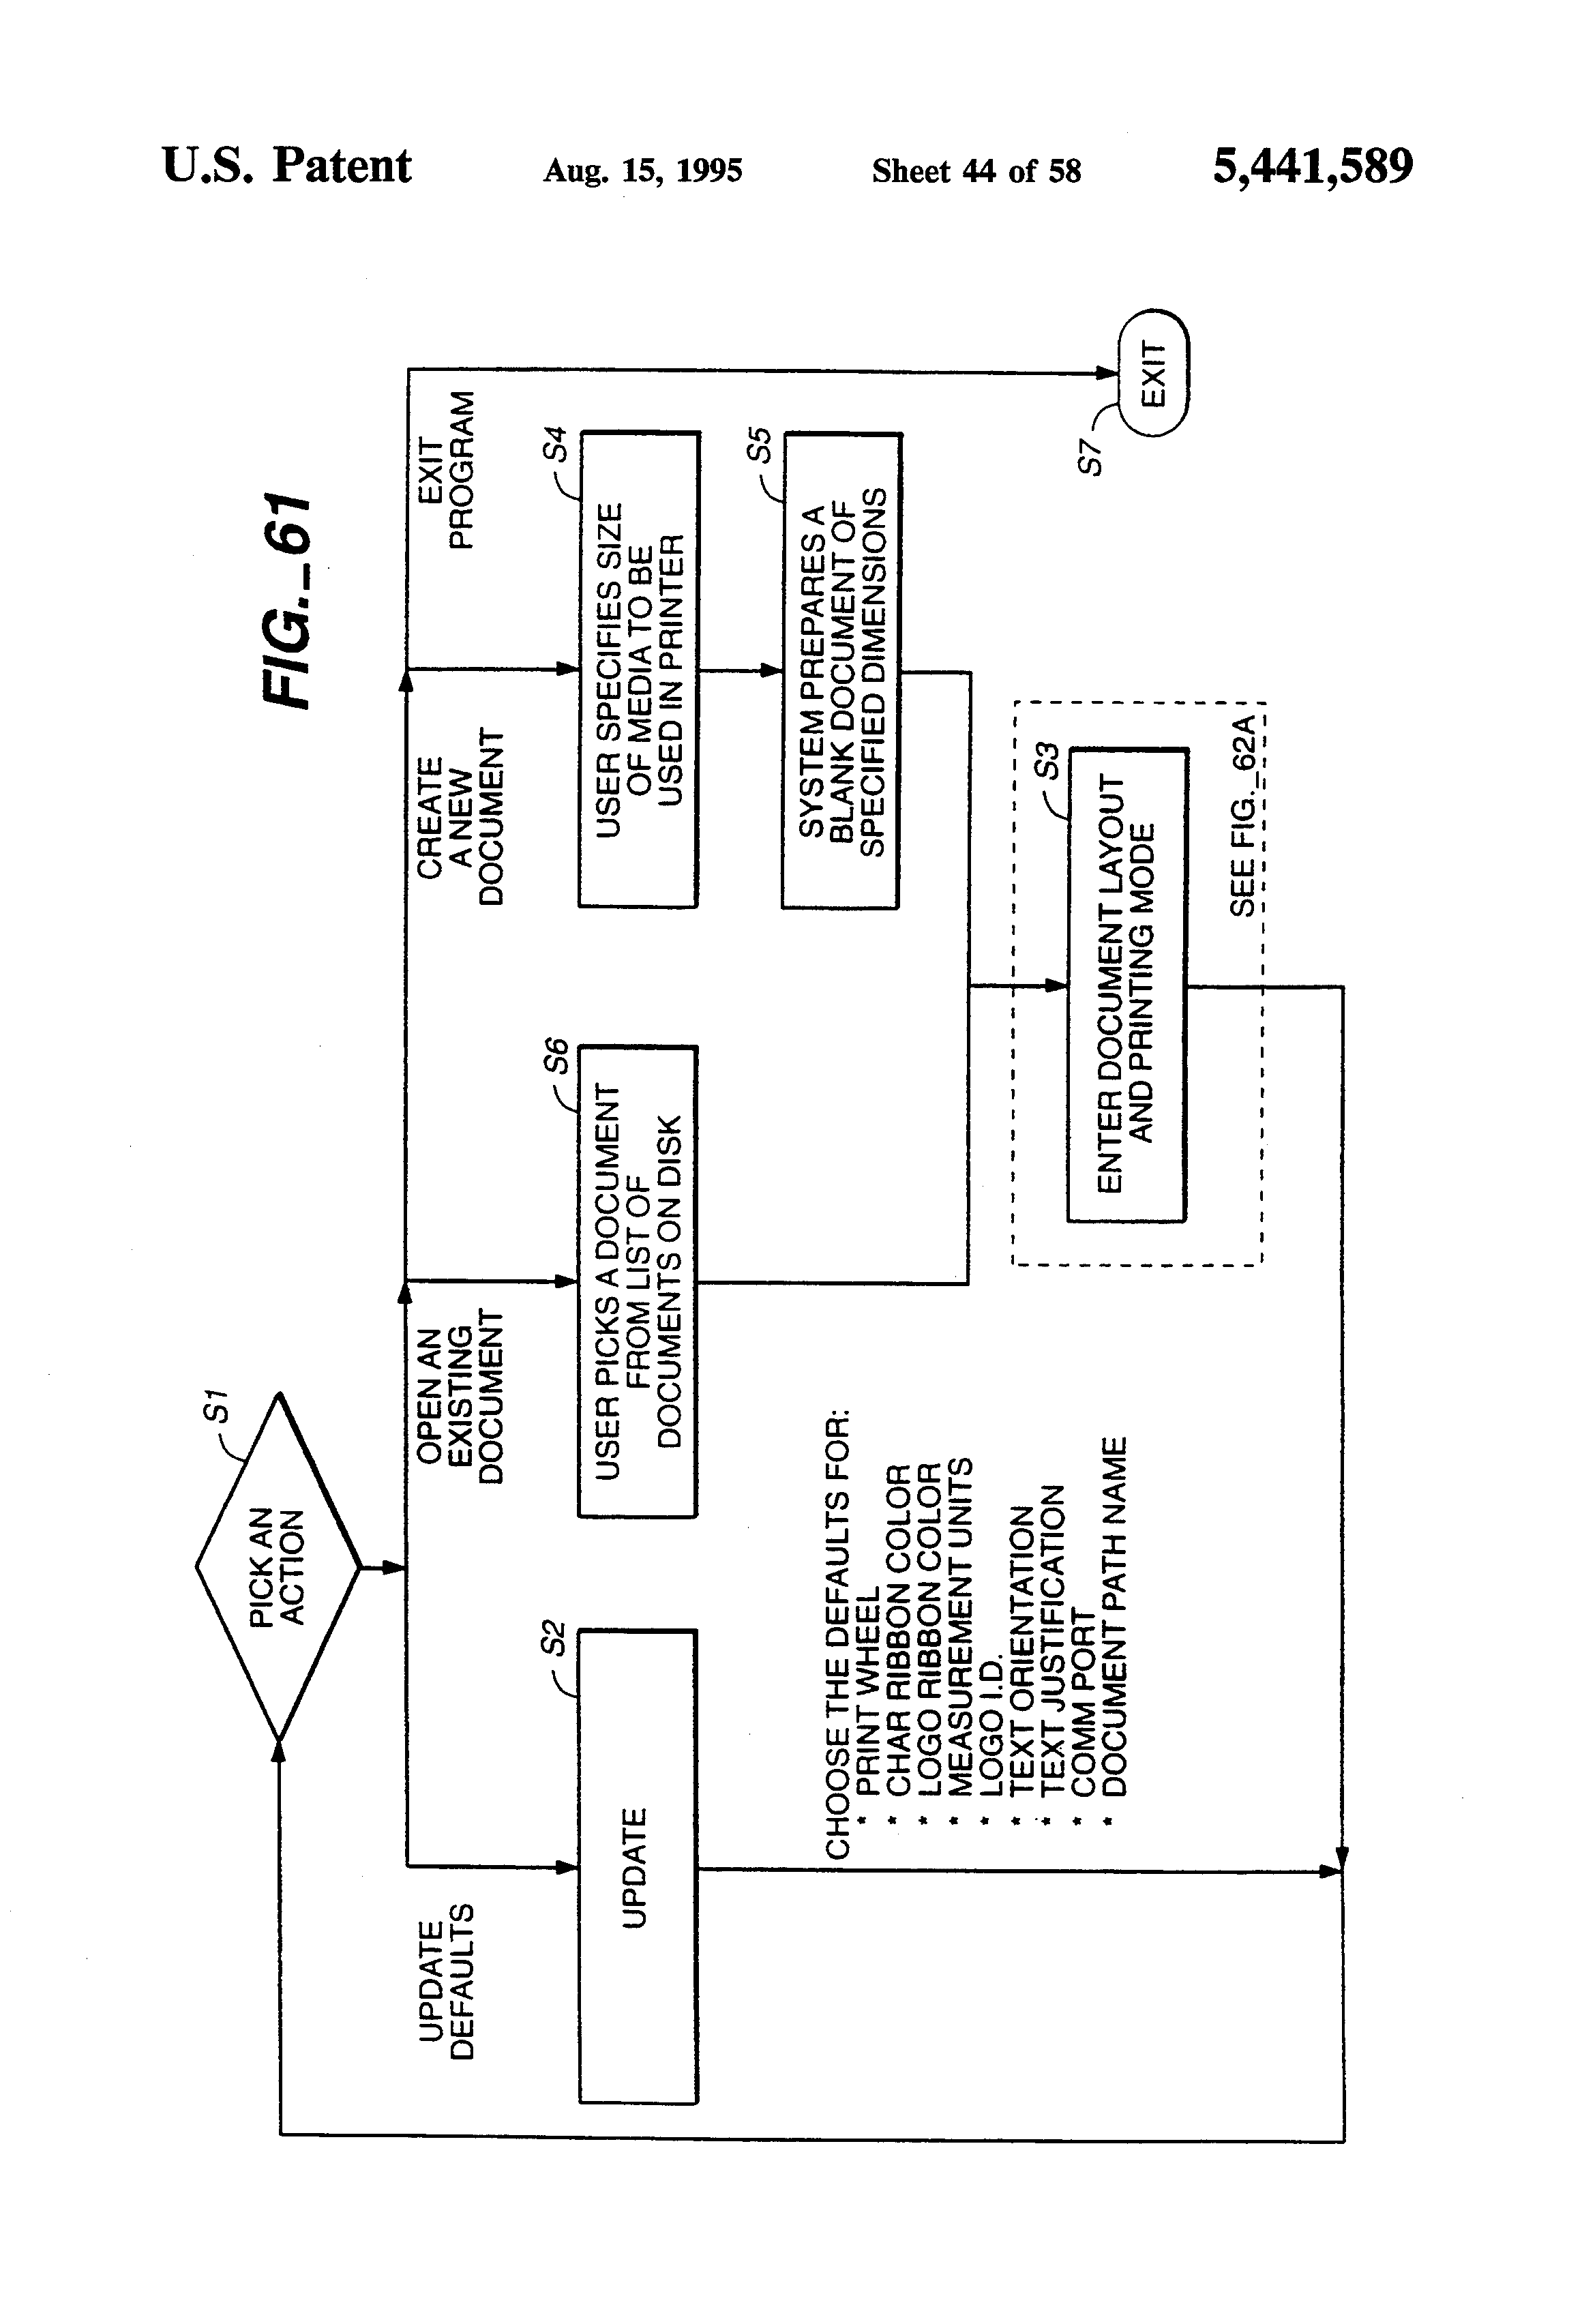 Patent Us5441589 Flat Bed Daisy Wheel Hot Debossing Stamper Array Connected To Port 1 Interrupter 3 Drawing